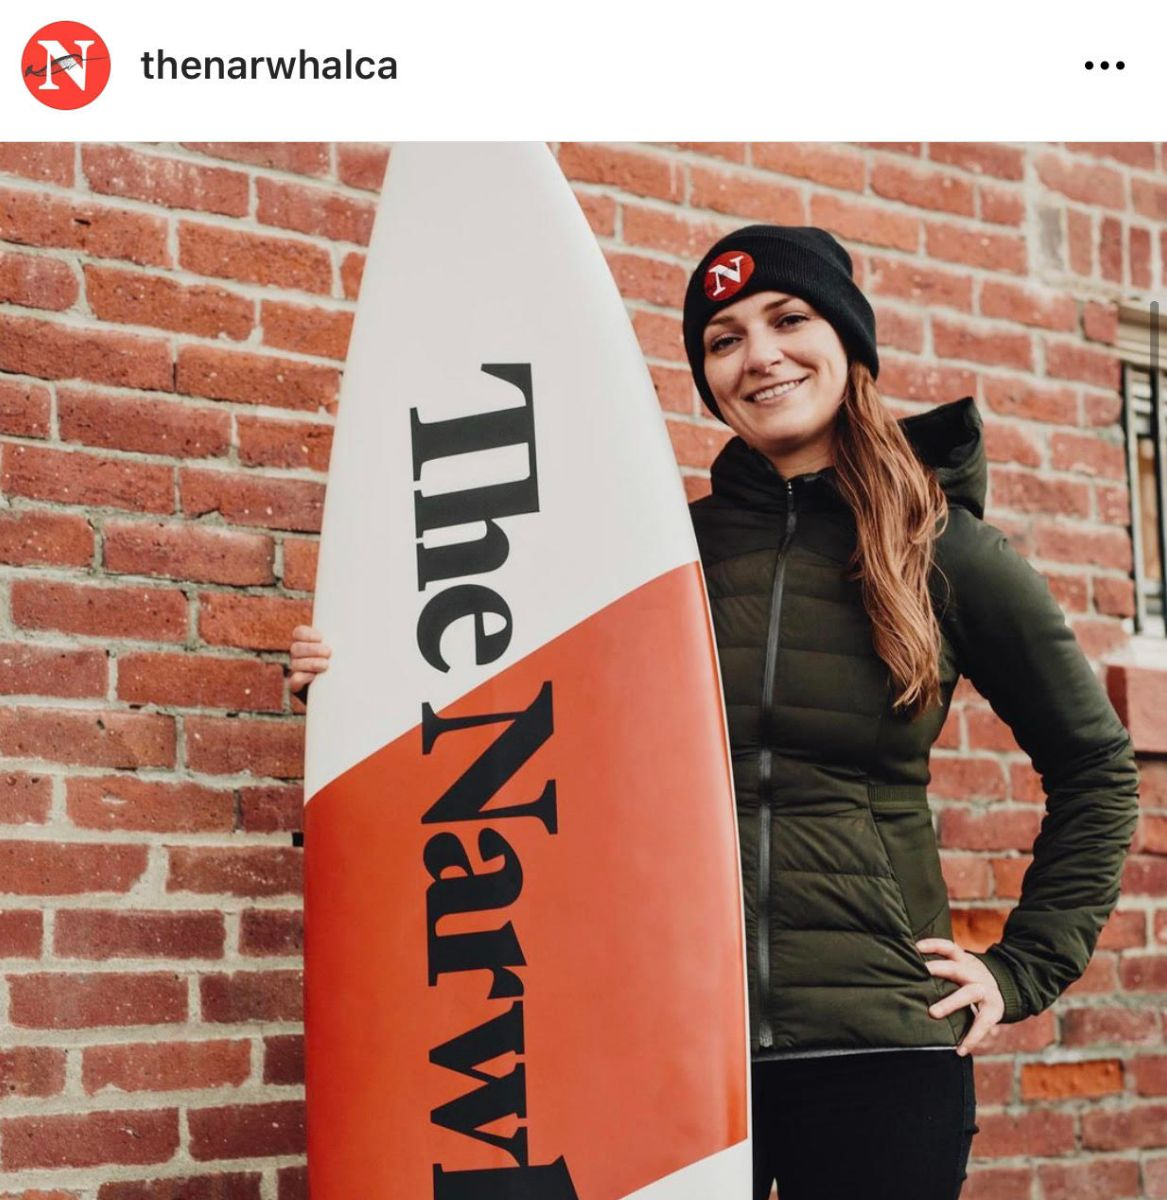 Instagram screengrab The Narwhal's editor-in-chief Emma Gilchrist holding surfboard